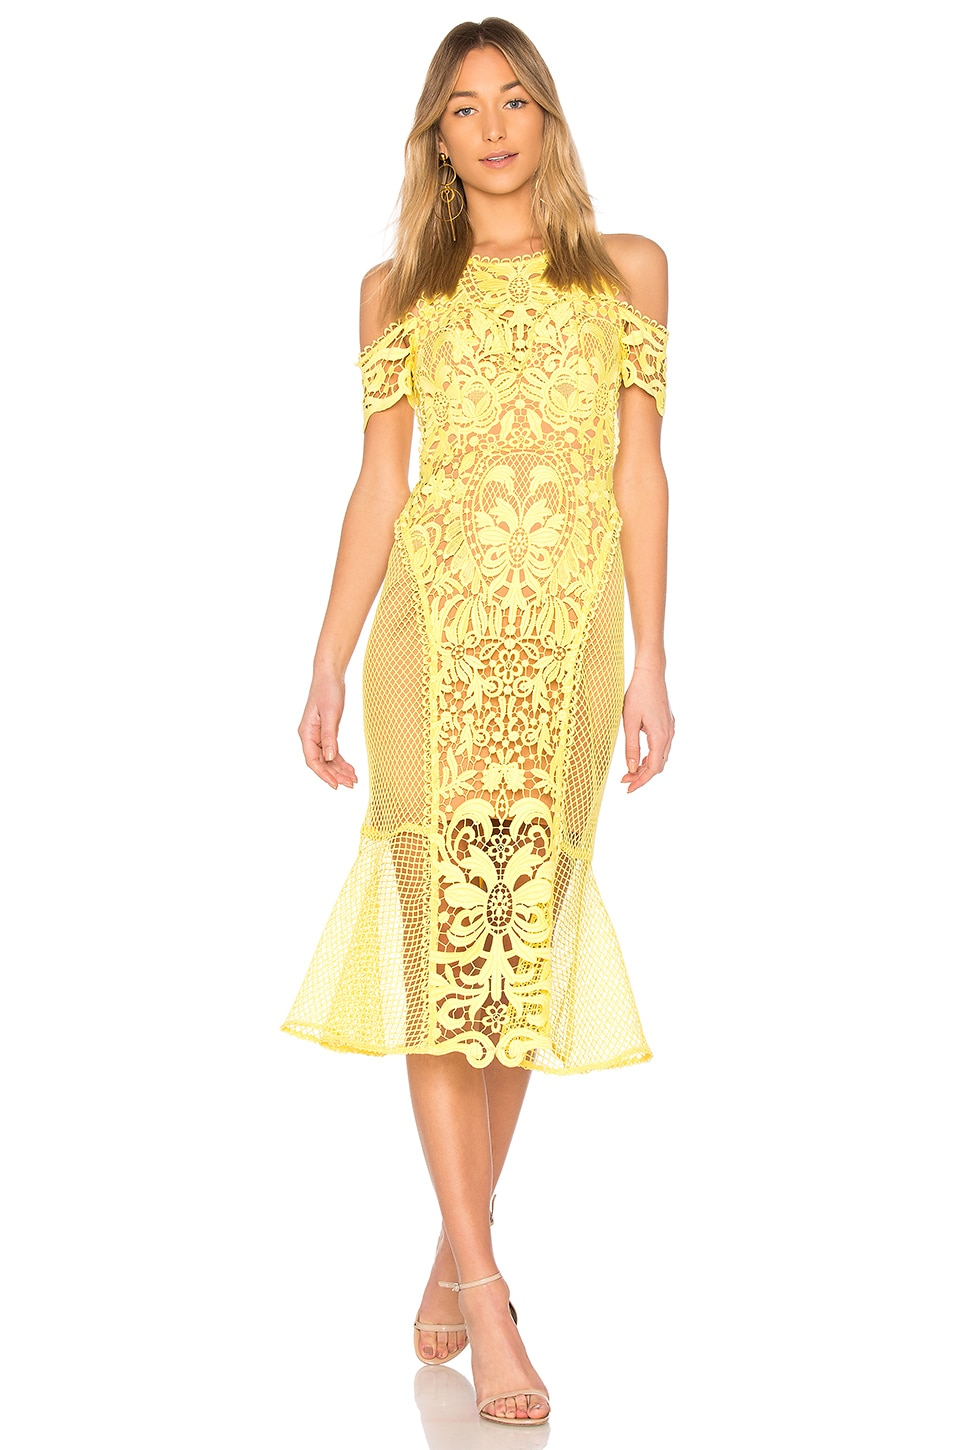 THURLEY Enchanted Garden Midi Dress in Zest